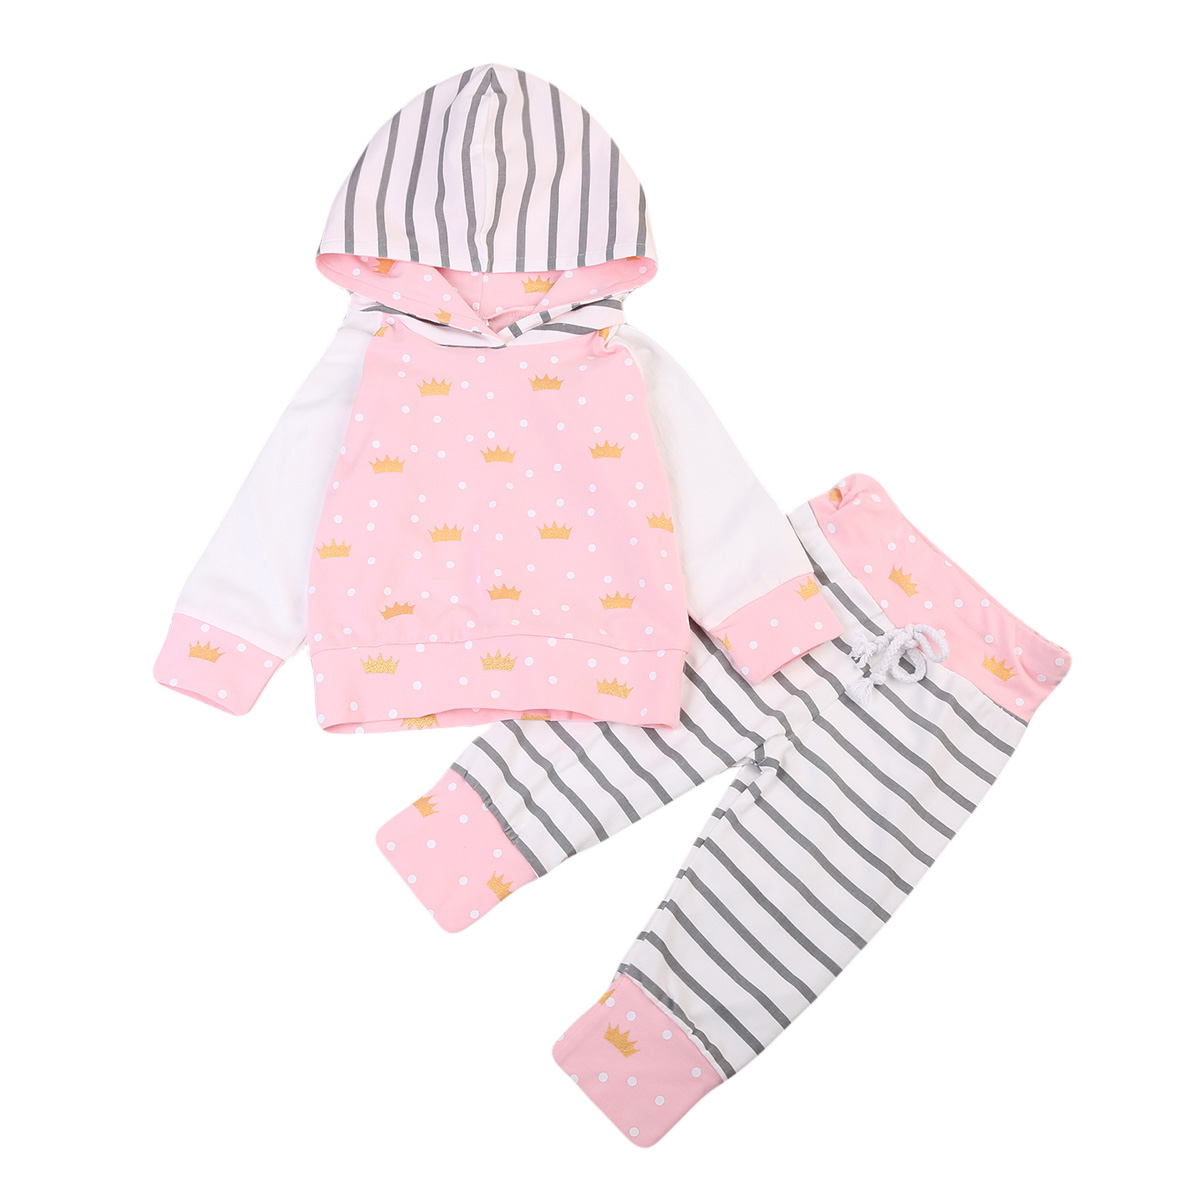 2017 Babies Girl Clothing Casual Toddler Baby Boys Girls Crown Hooded Tops Stripe Pants Outfits Set Clothes 0-3T